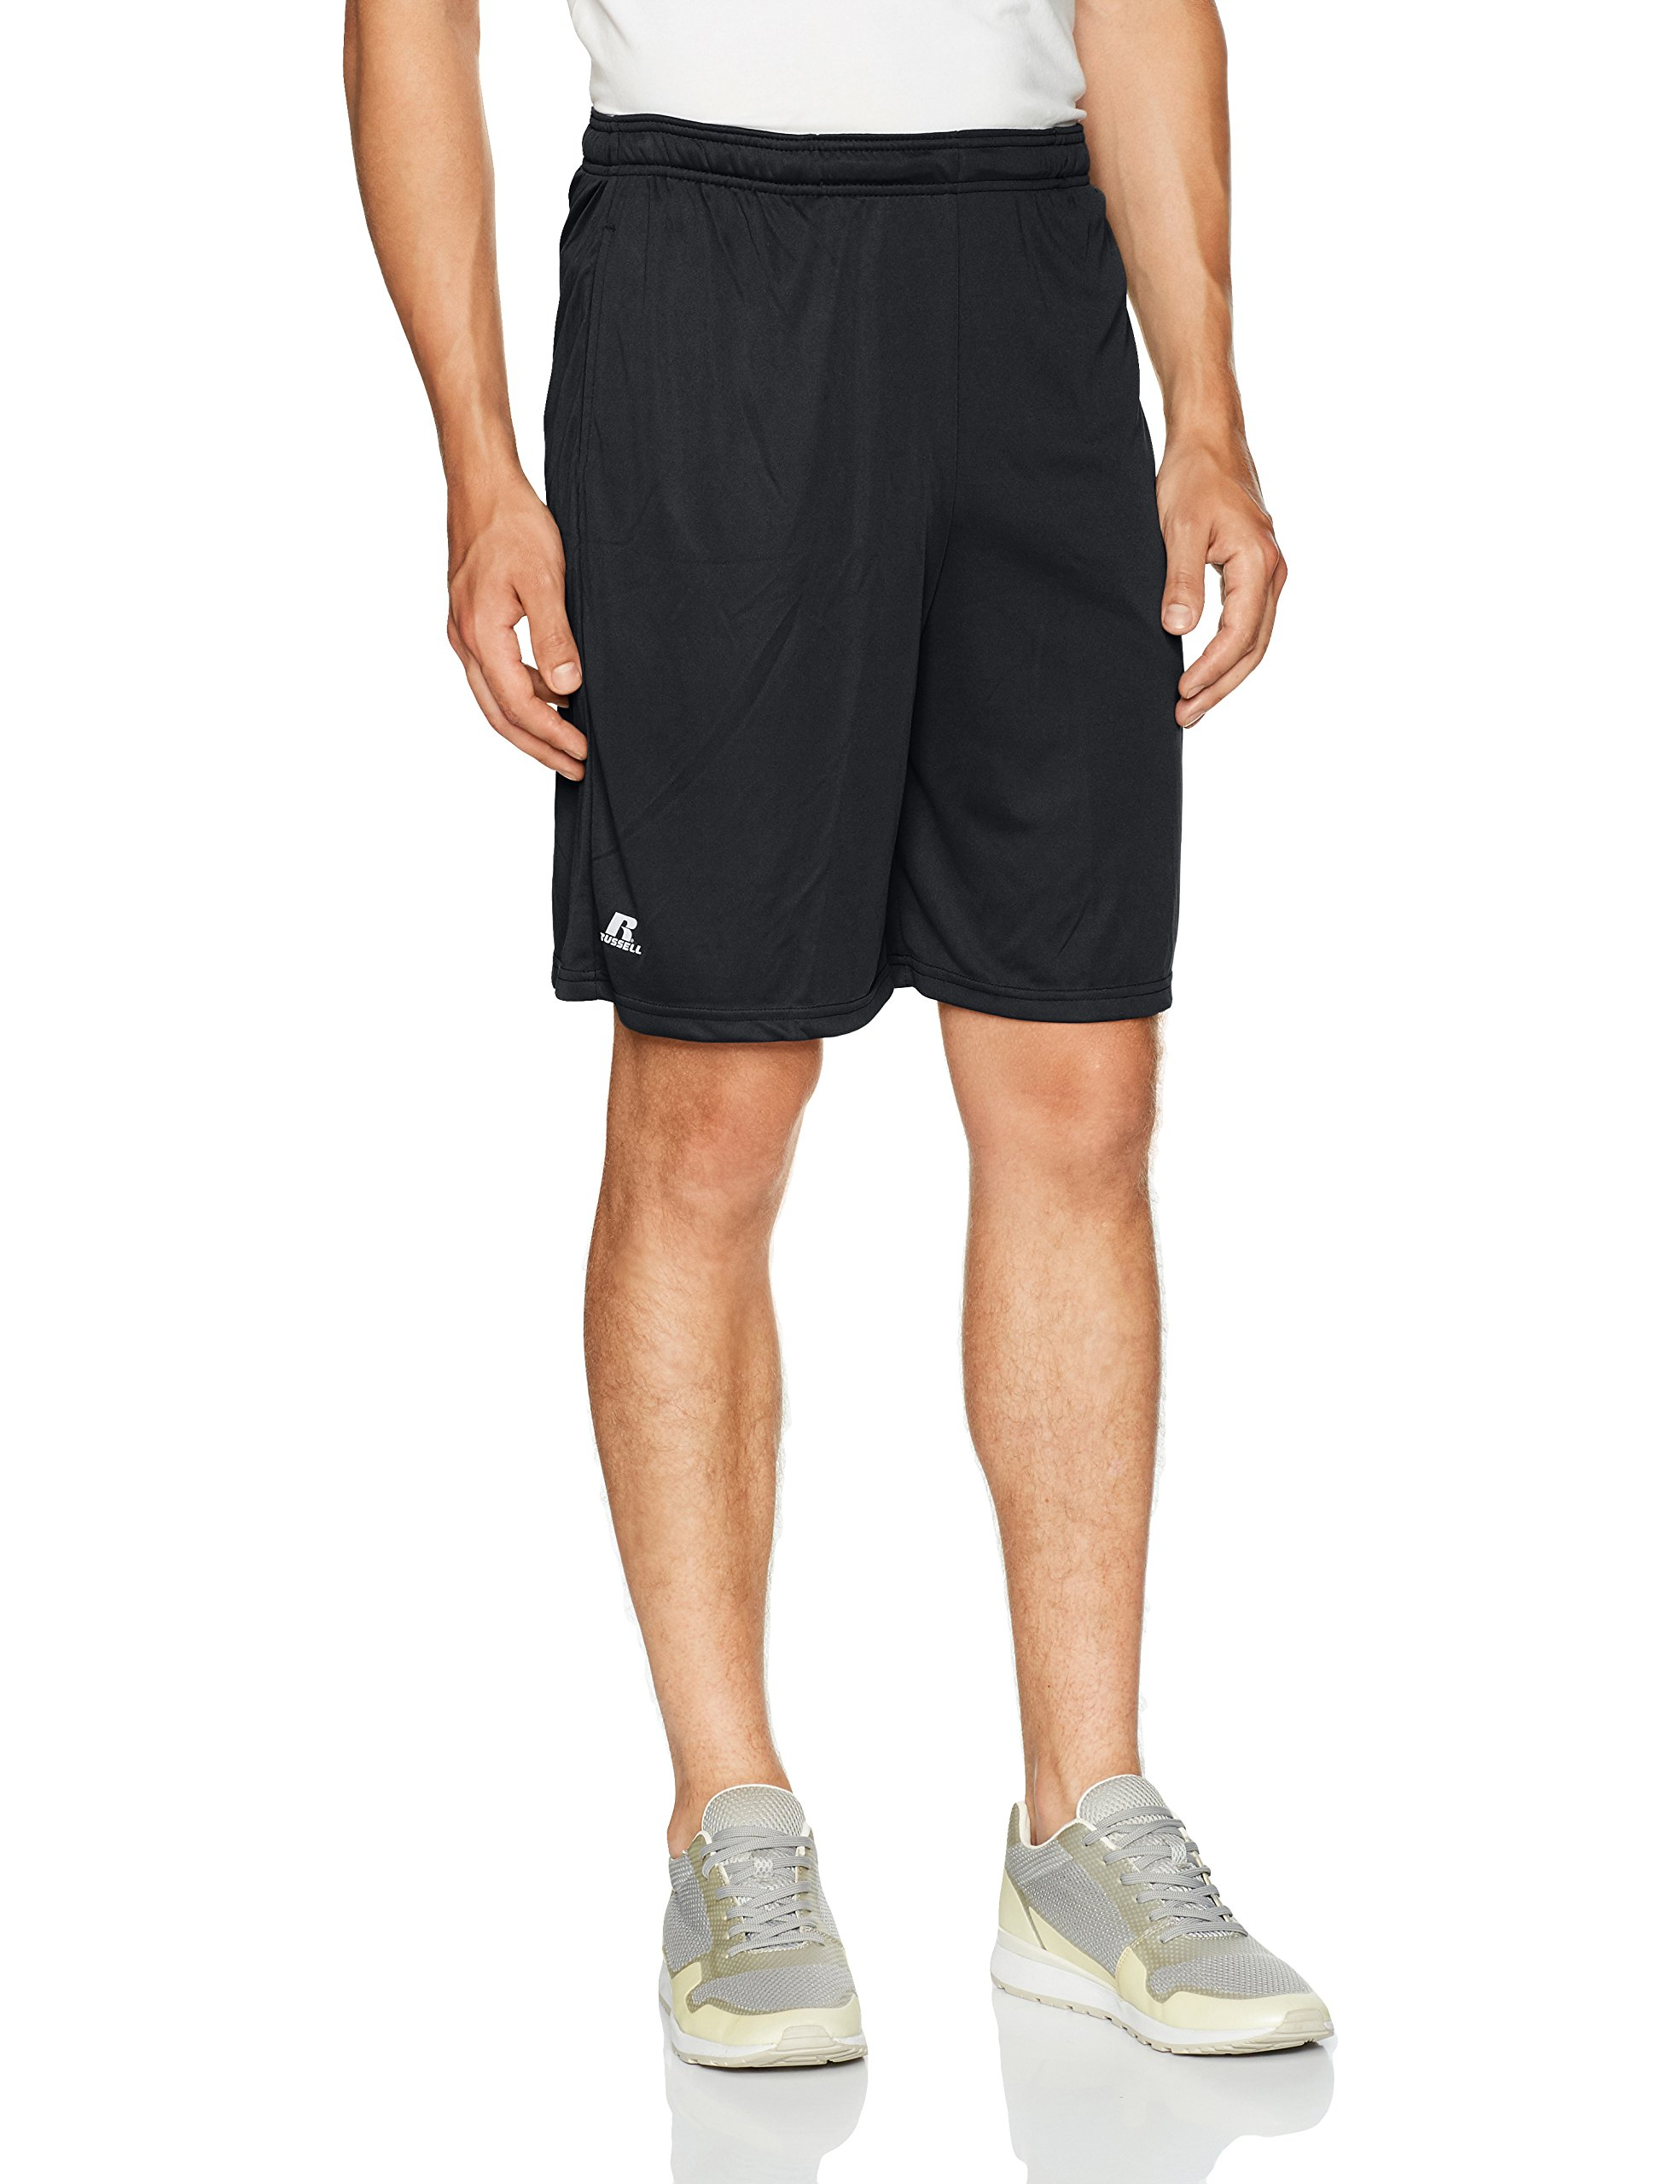 Russell Athletic Men's Dri-Power Performance Short with Pockets, Black, L